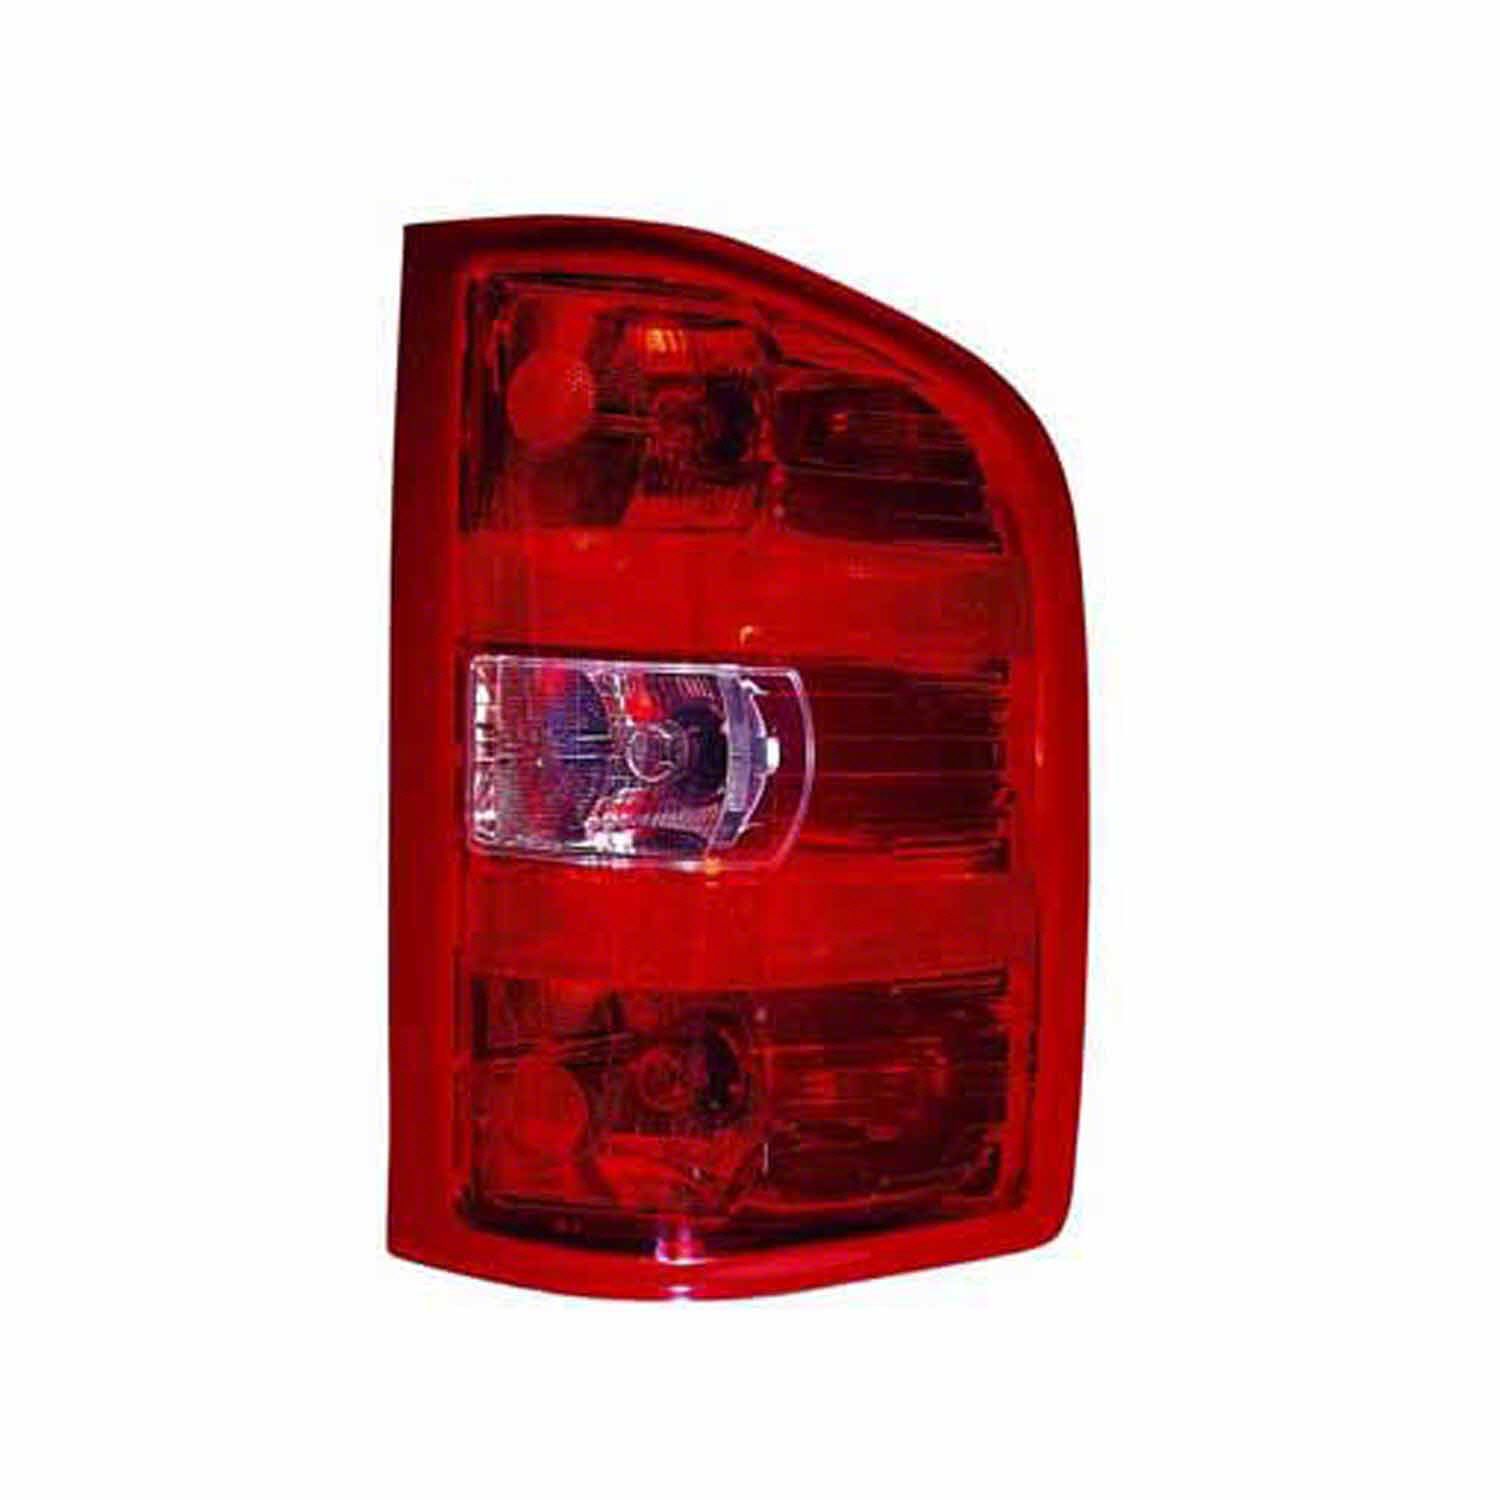 hight resolution of 2007 2013 chevrolet silverado 1500 passenger side right tail lamp assembly incl wiring harness 25958483 walmart com